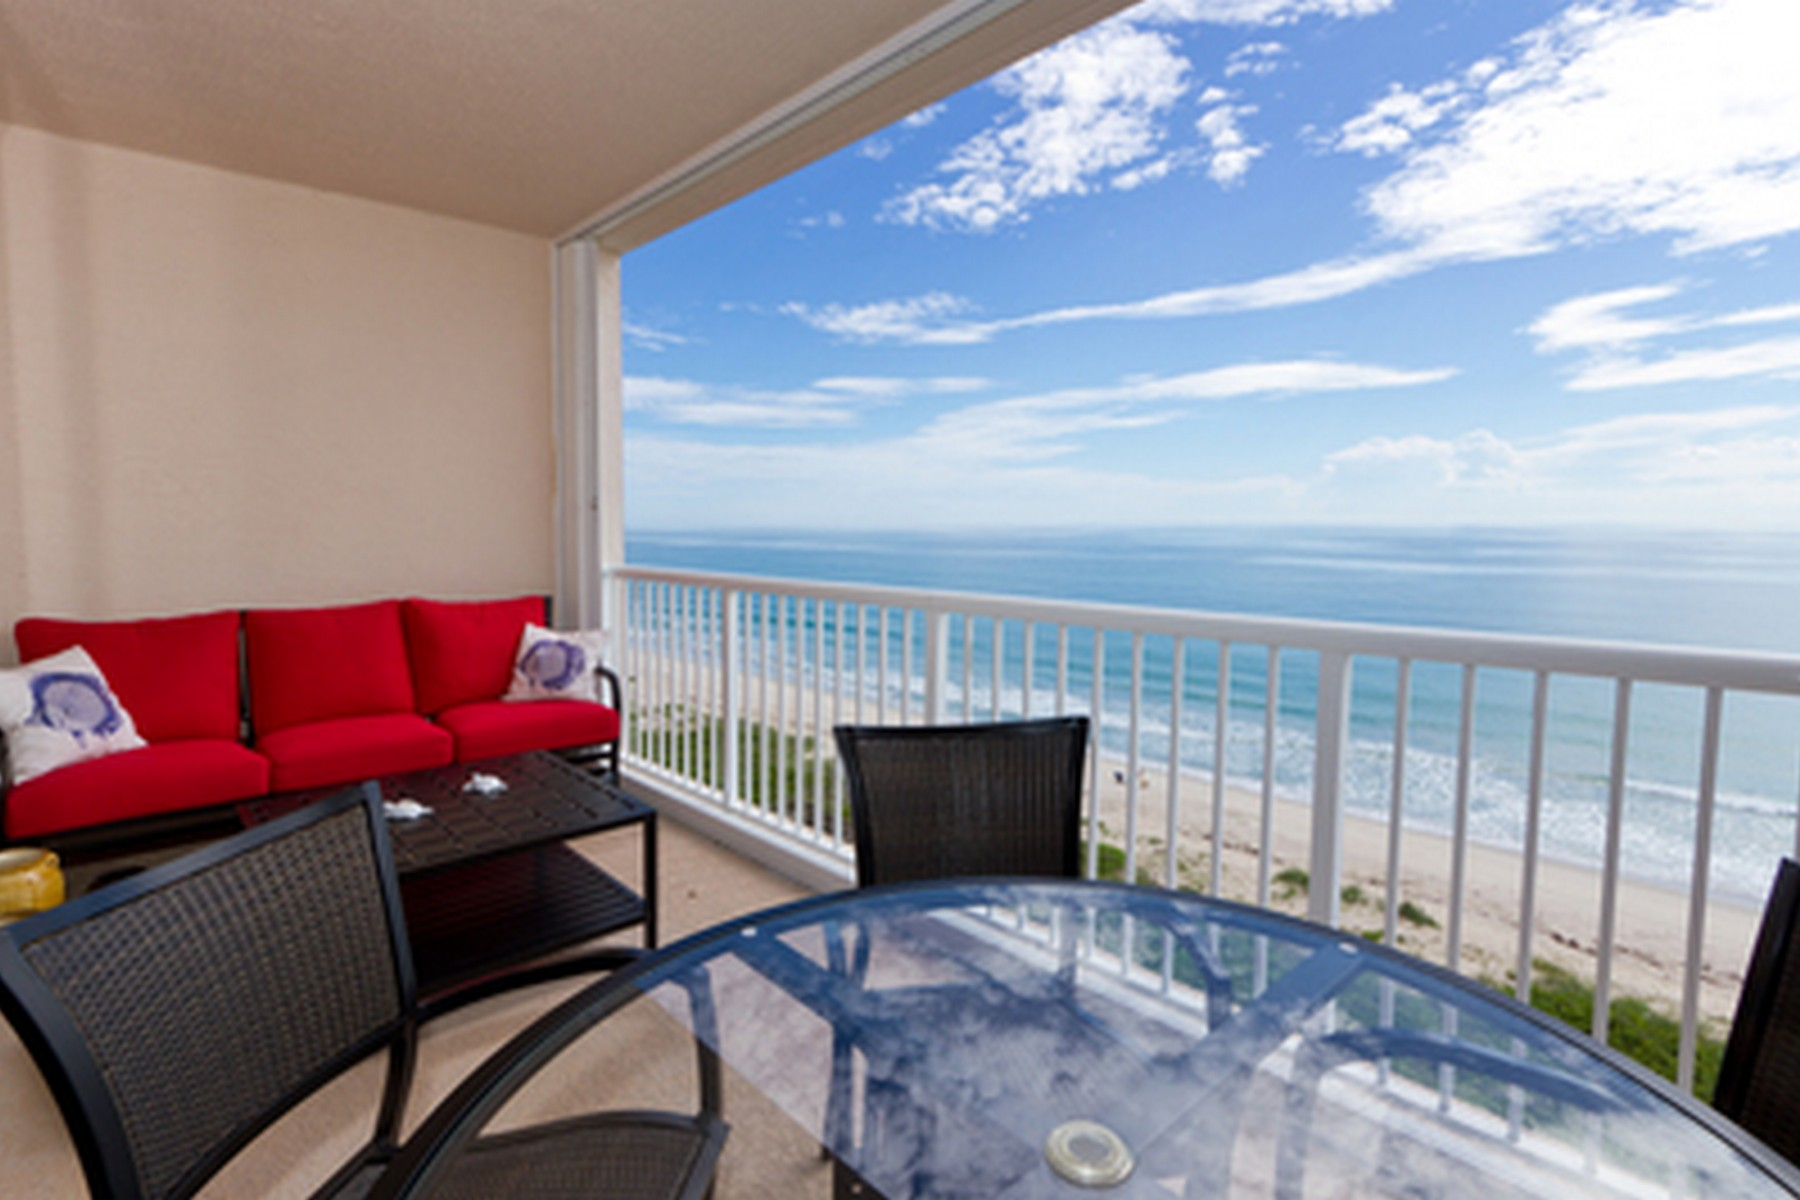 Appartement voor Verkoop op The Sky Touches the Sea of this Ninth Floor Oceanfront Condo! 4160 N Highway A1A #903A Hutchinson Island, Florida 34949 Verenigde Staten